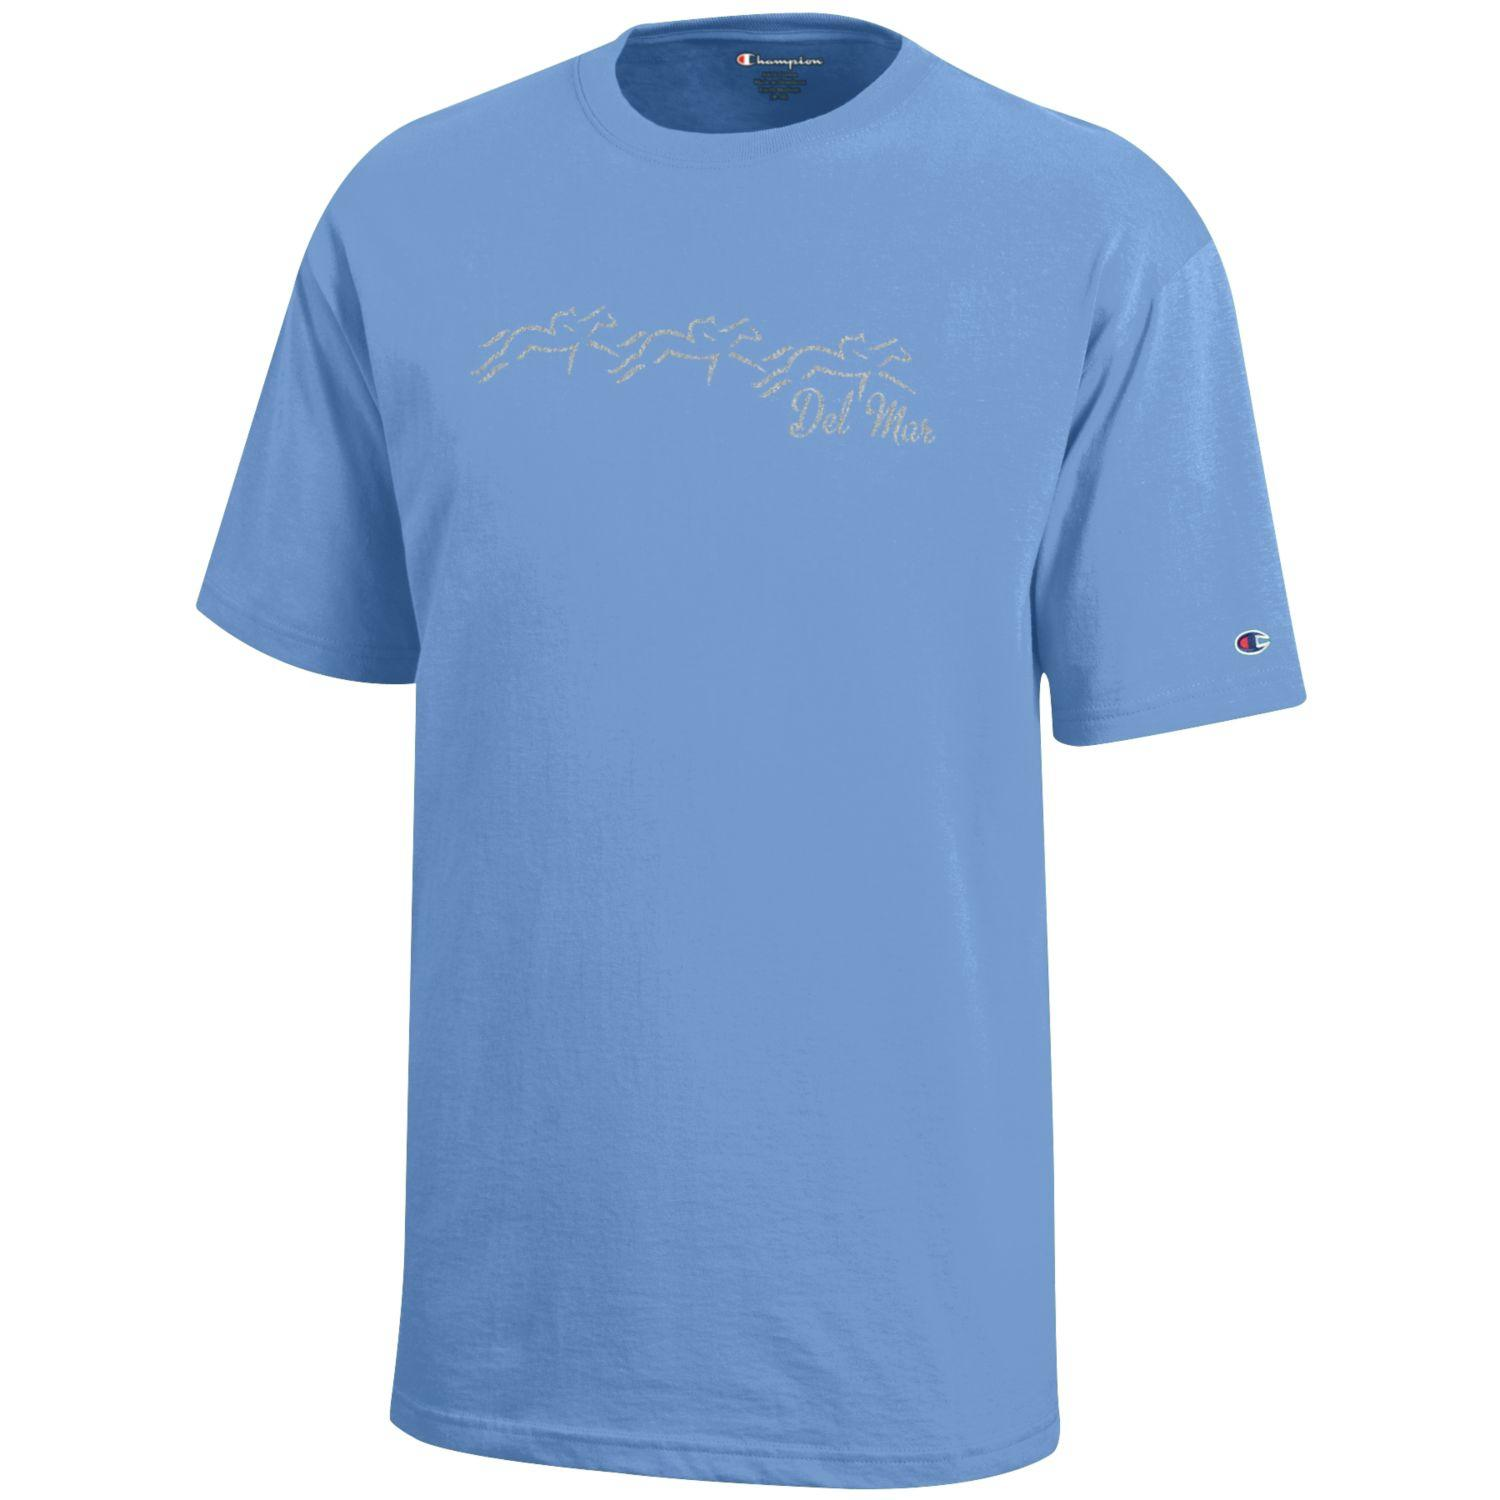 Youth Girls Tee-Lt. Blue